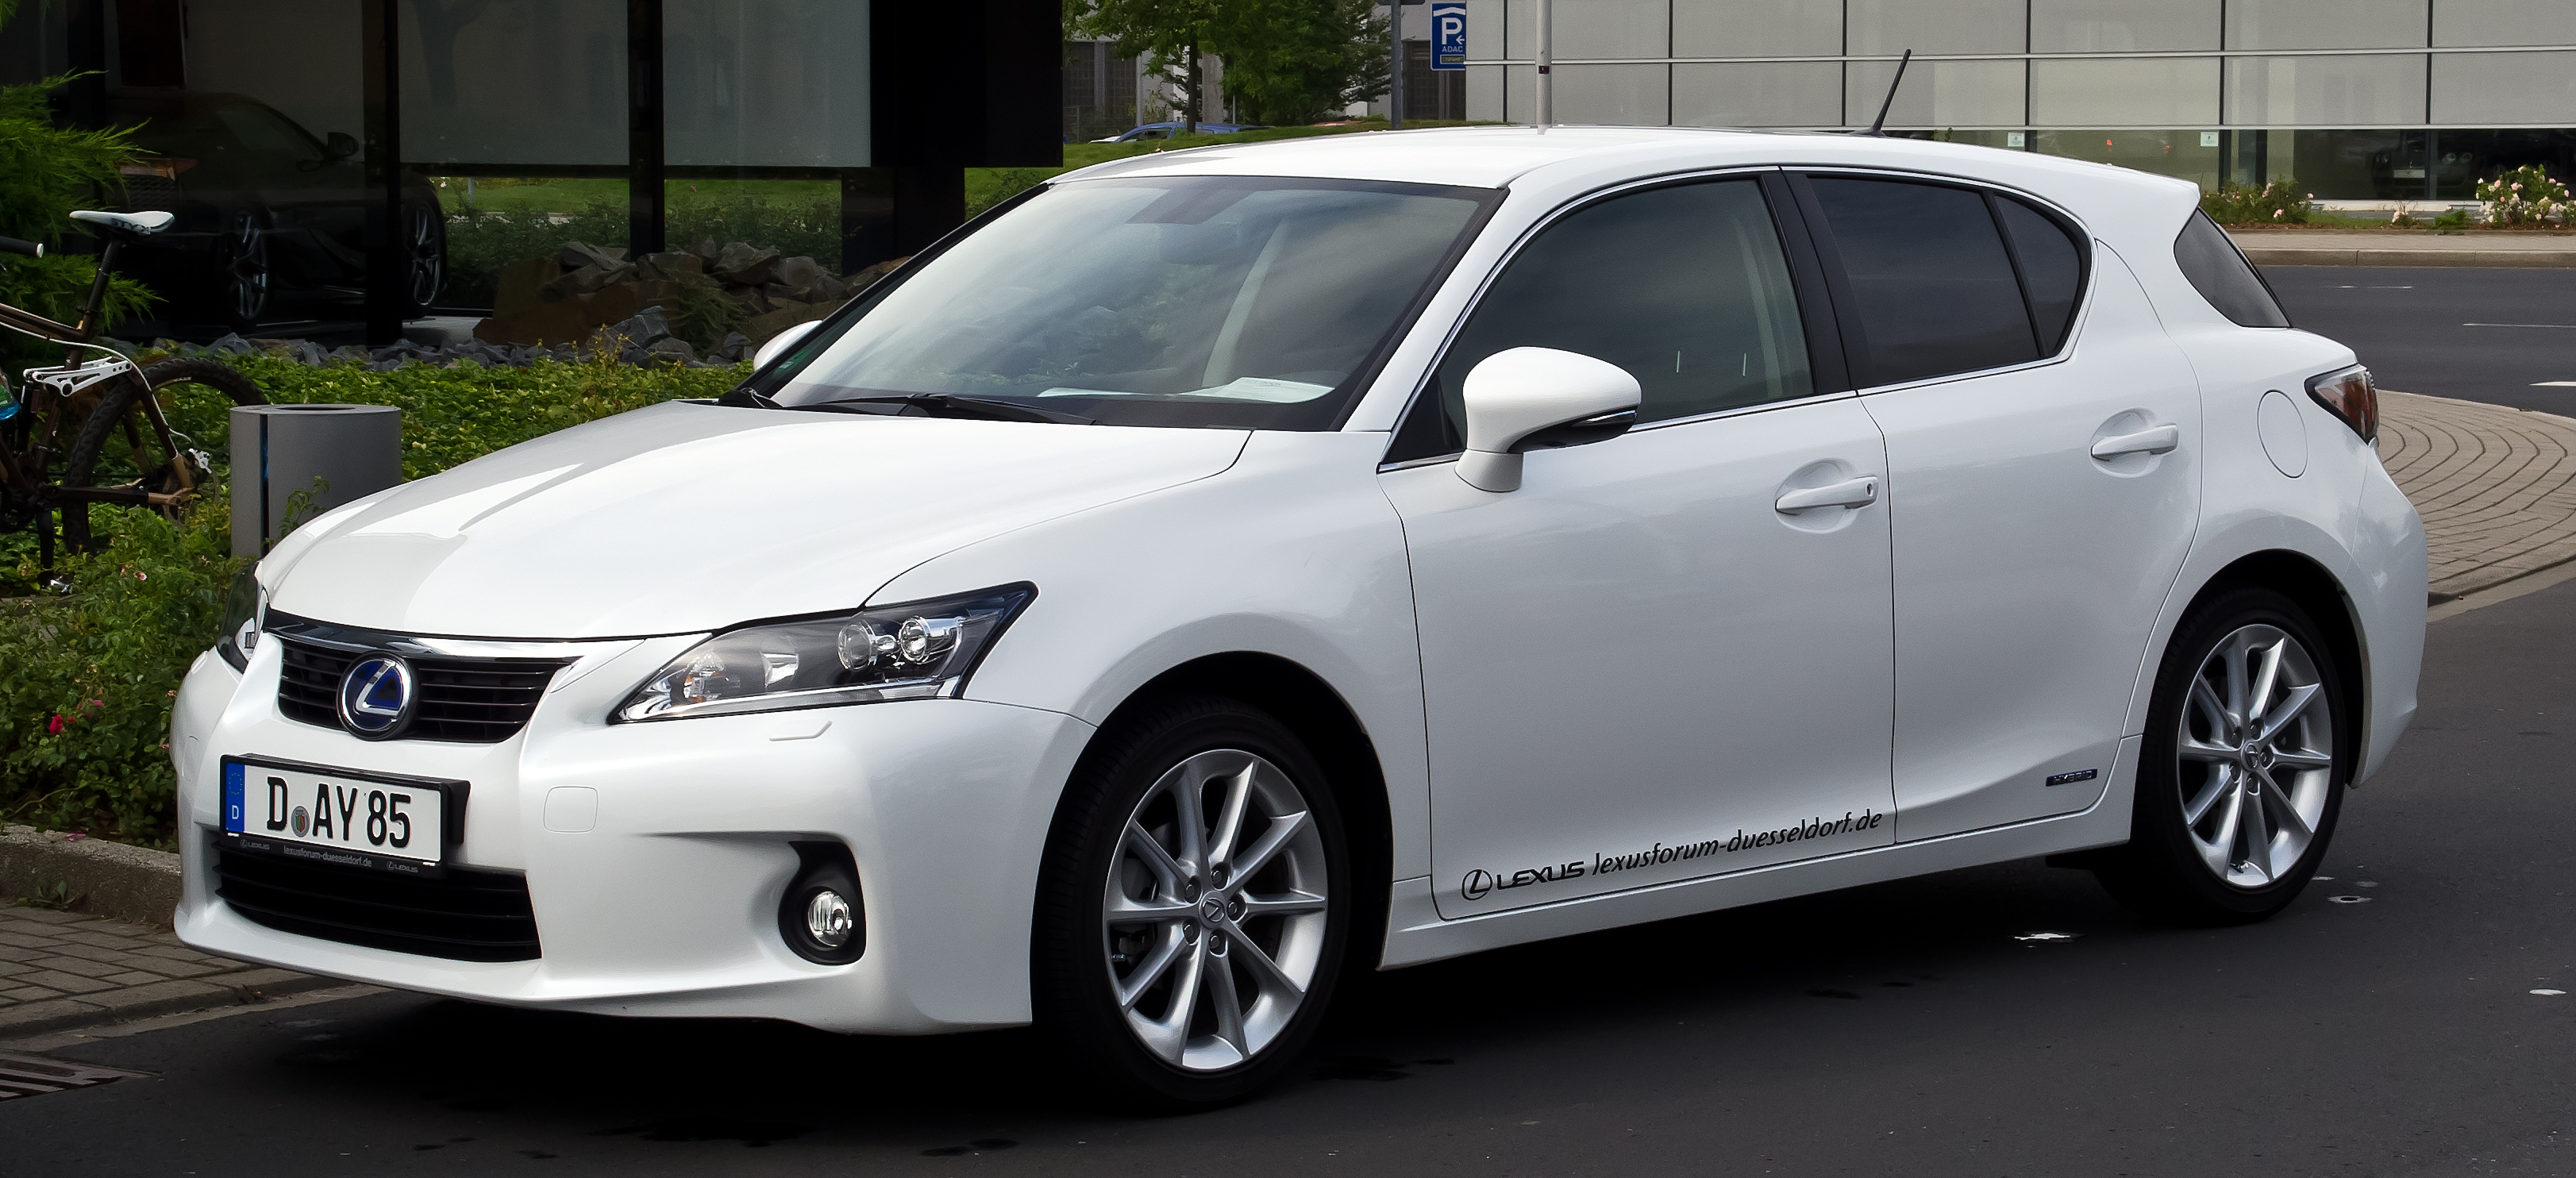 sport reviews of and speed review top luxury rating ct lexus driven